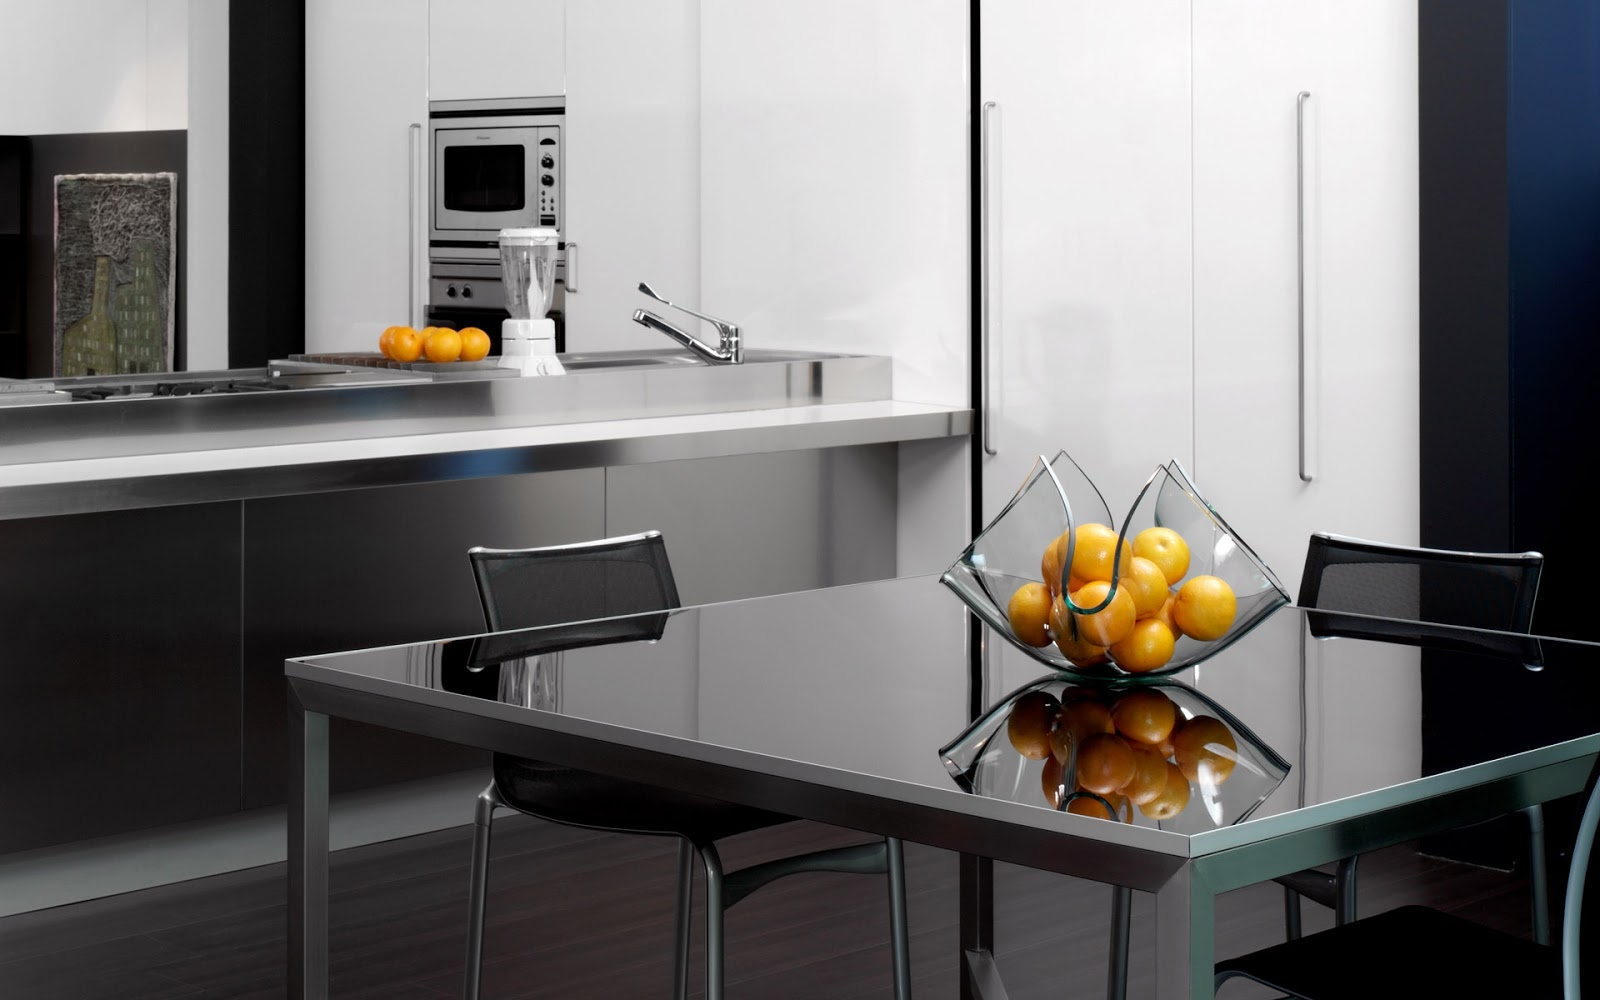 Wallpaper Magazine Kitchen Design Kitchen Designs 2013 Hd Wallpapers Wallpaper202